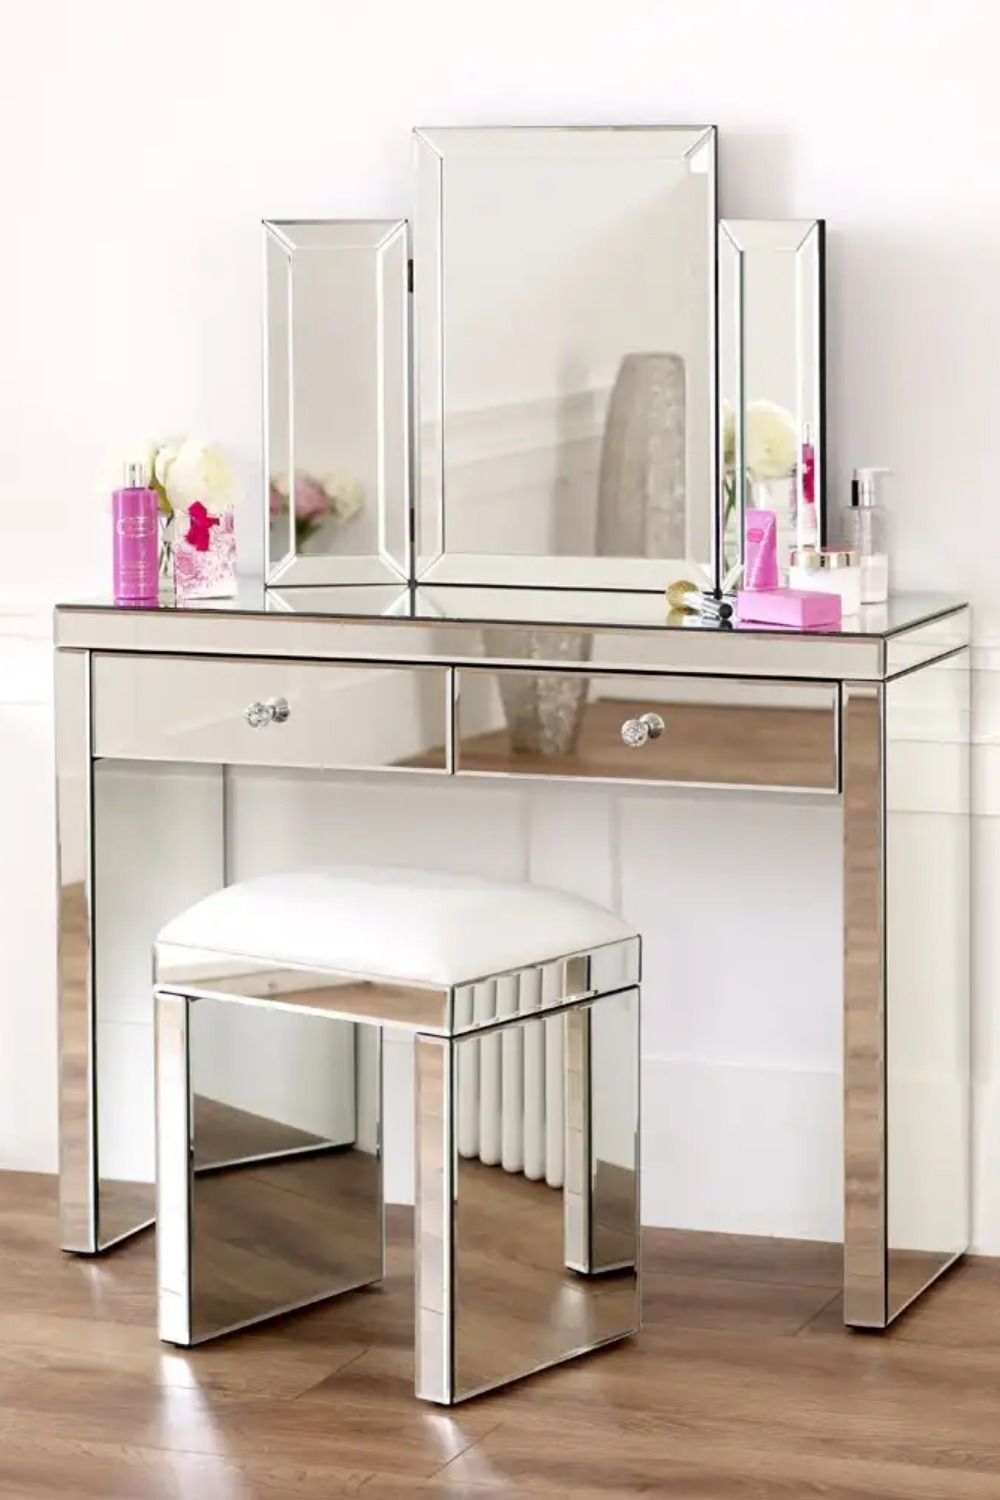 Dressing Table Set 2 Drawer Dressing Table Mirrored Furniture